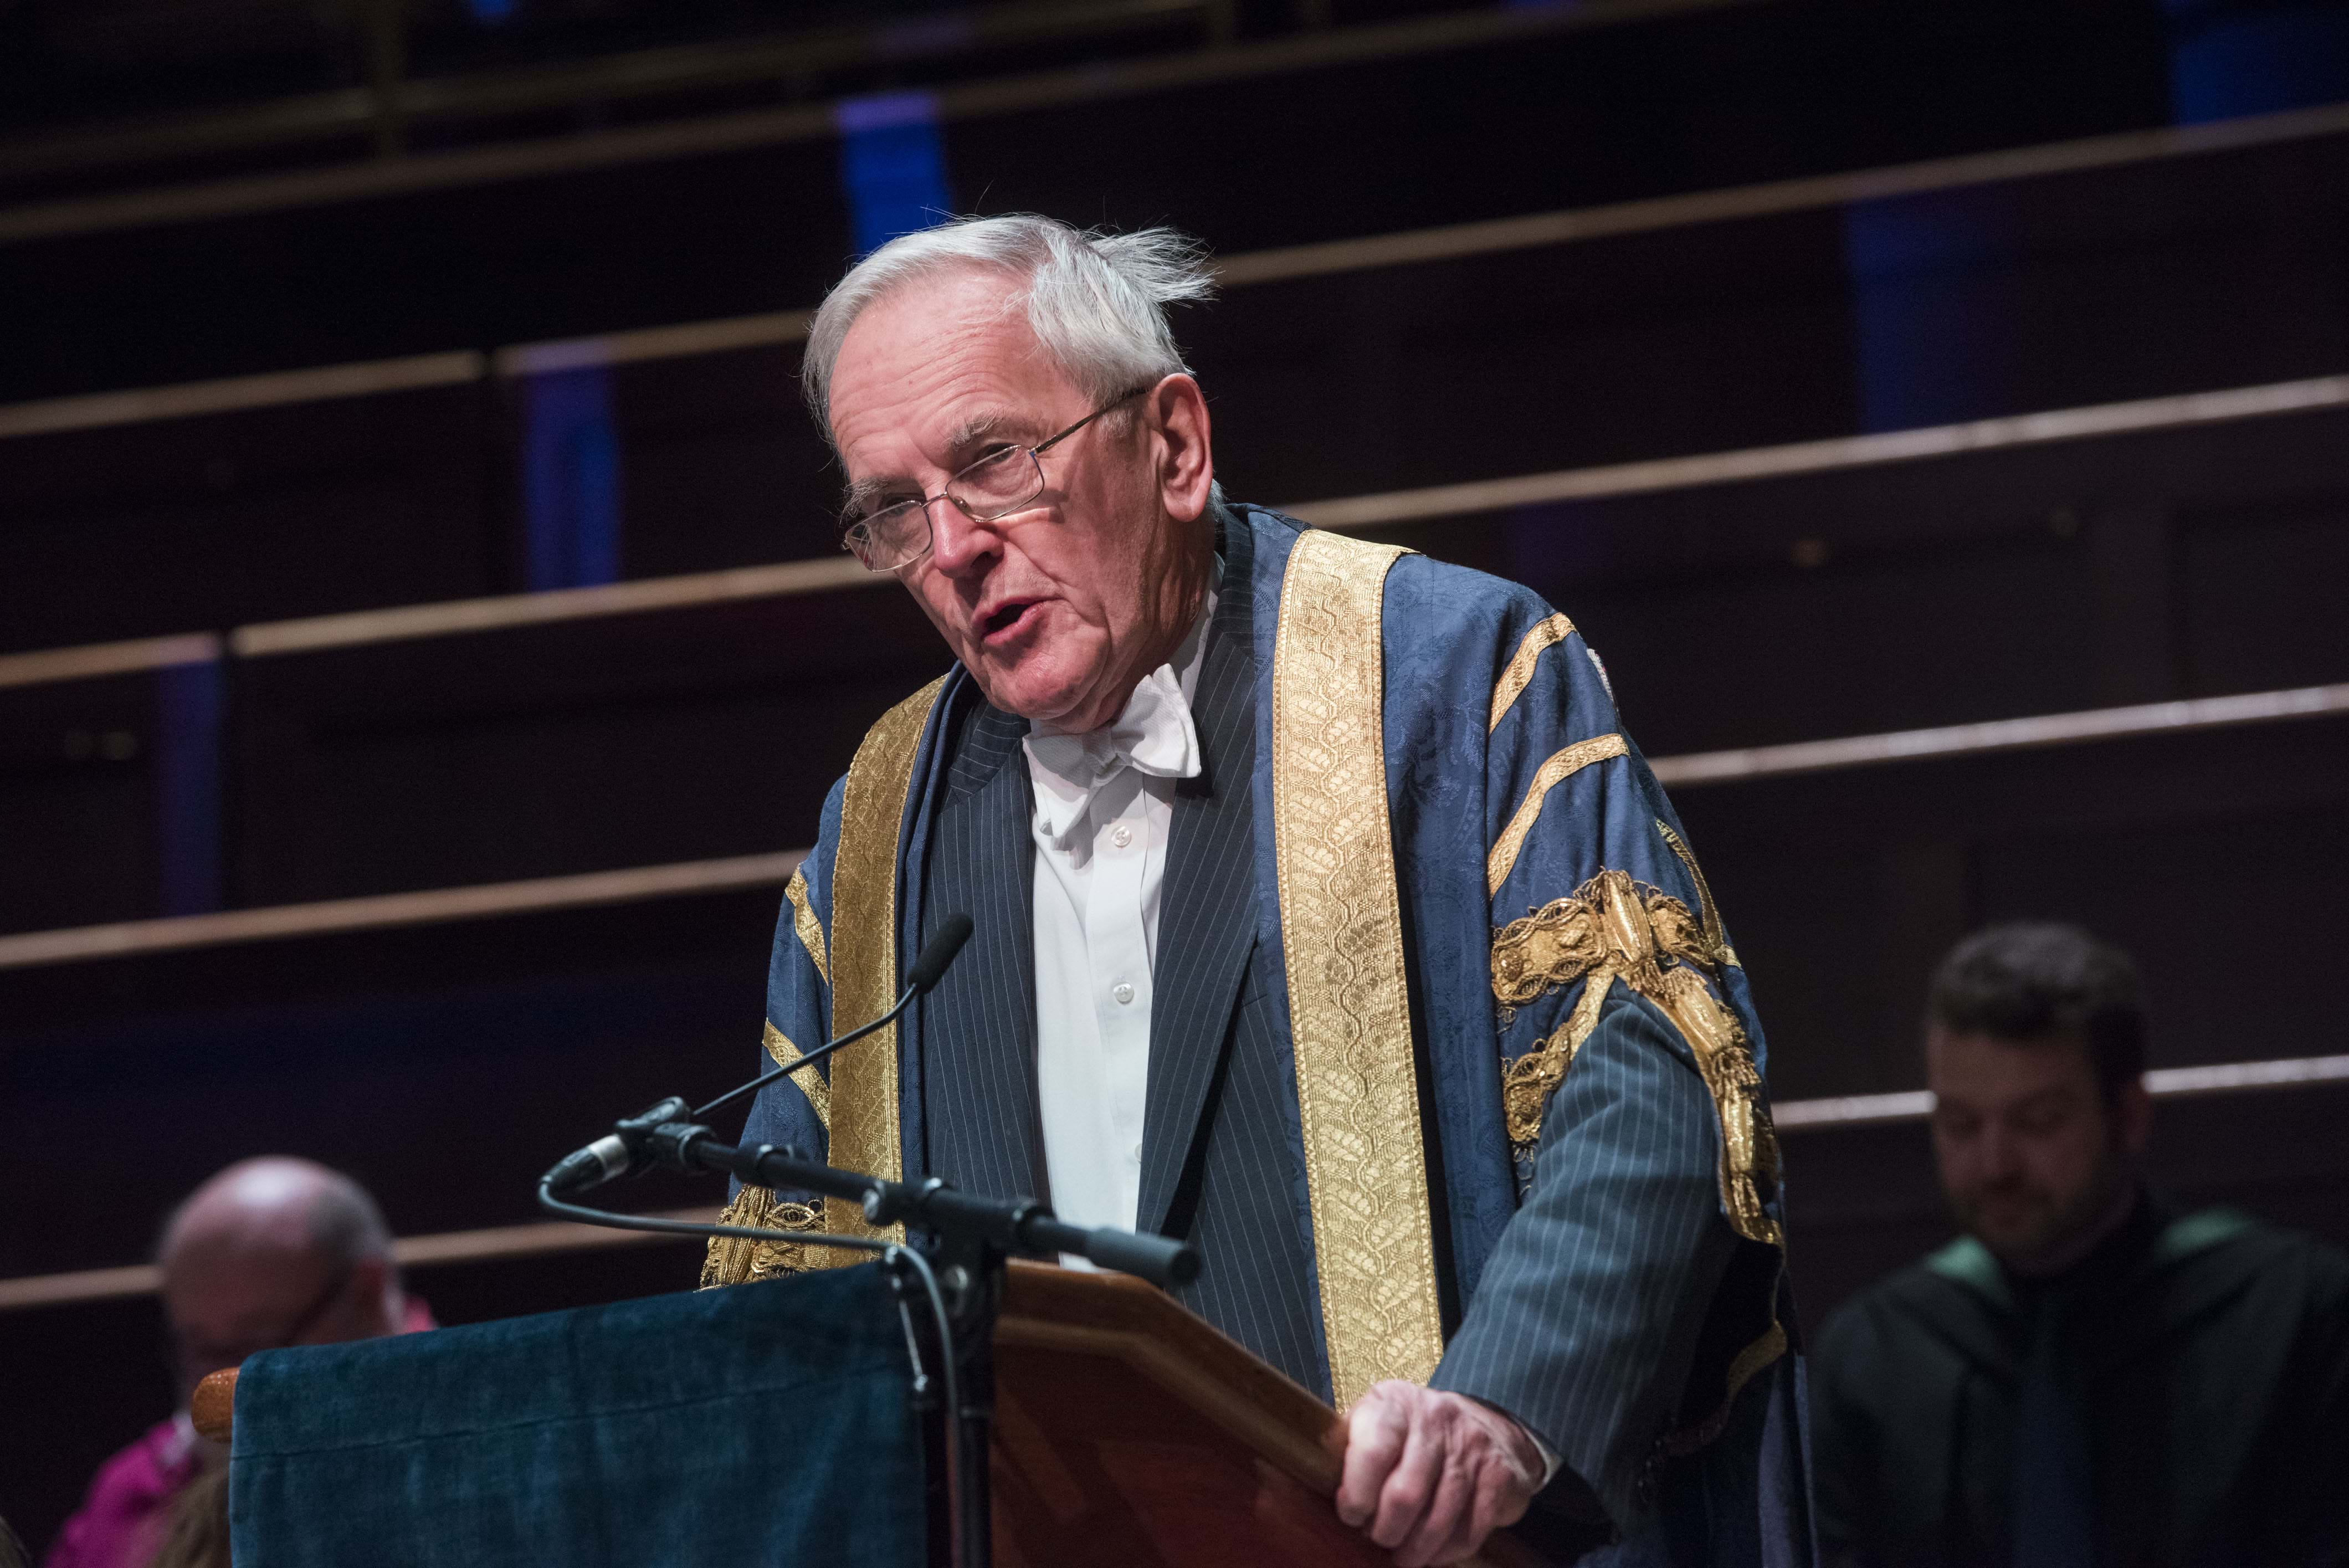 Lord Cullen speaking at an Abertay graduation ceremony